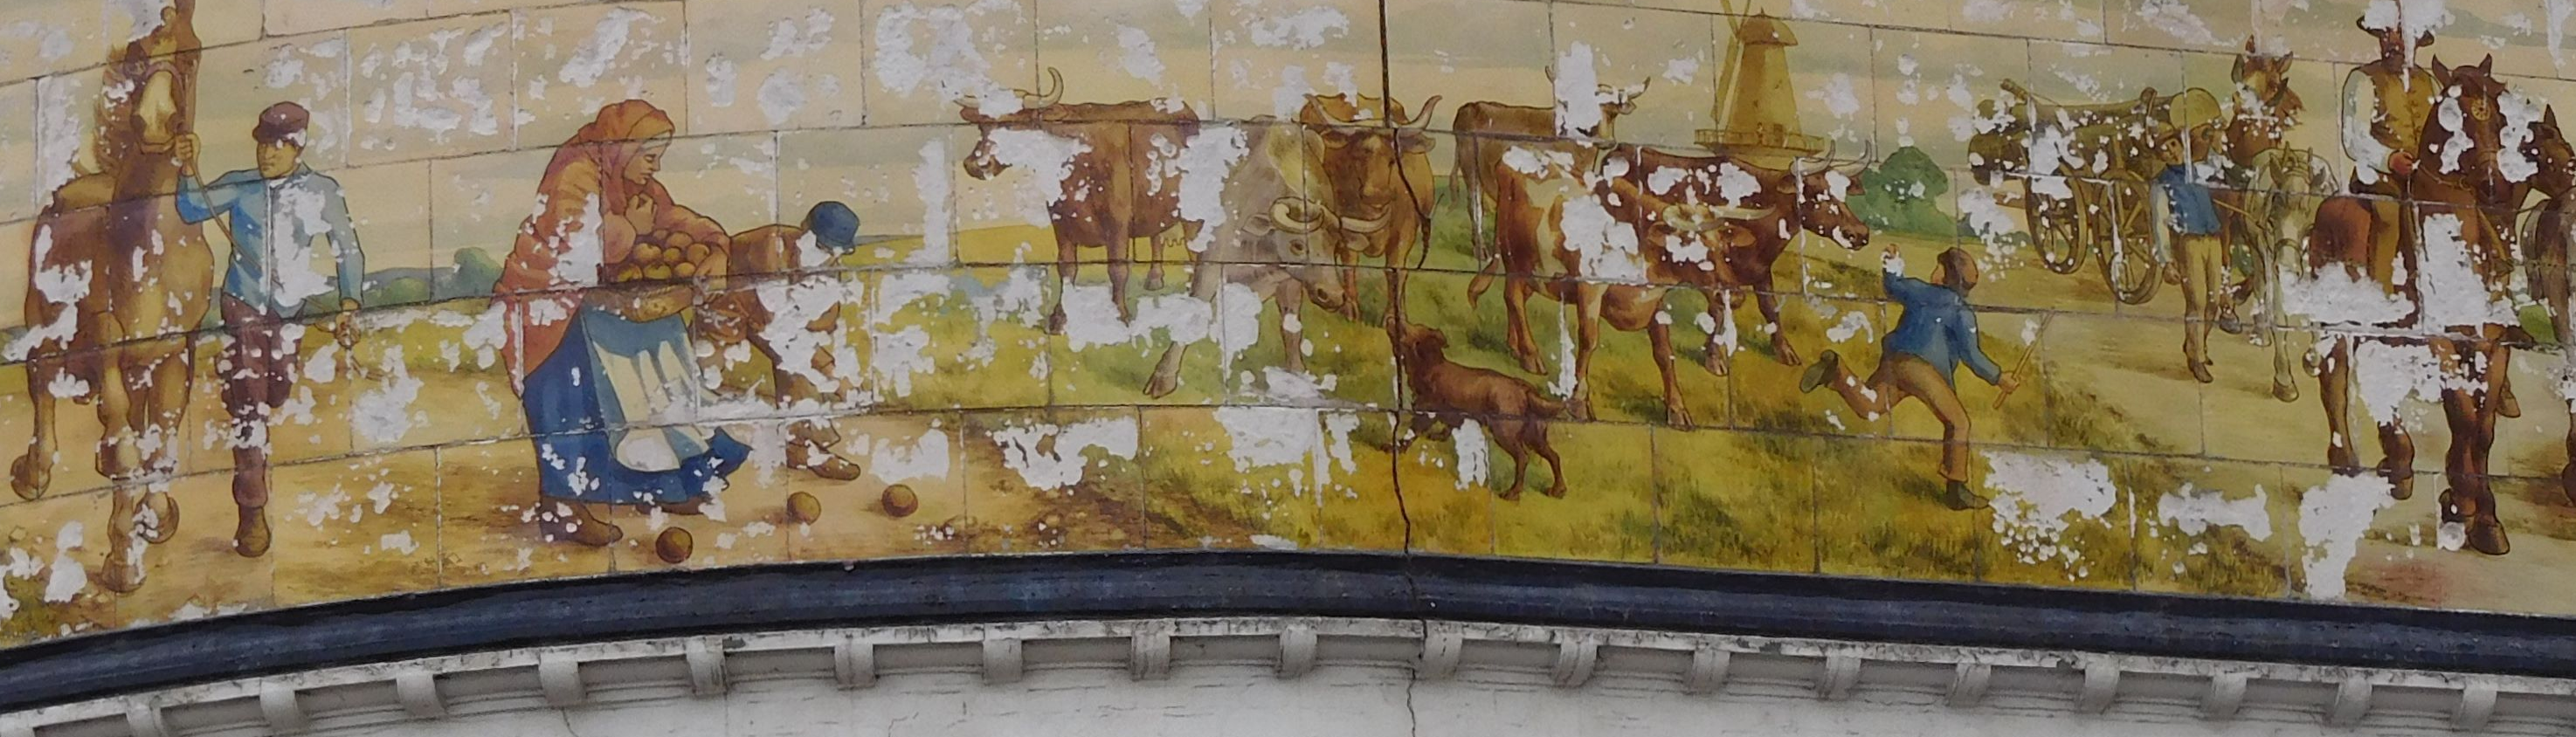 Old Kent Road, Kentish Drovers & Halfway House Pub Mural.  X (2).png